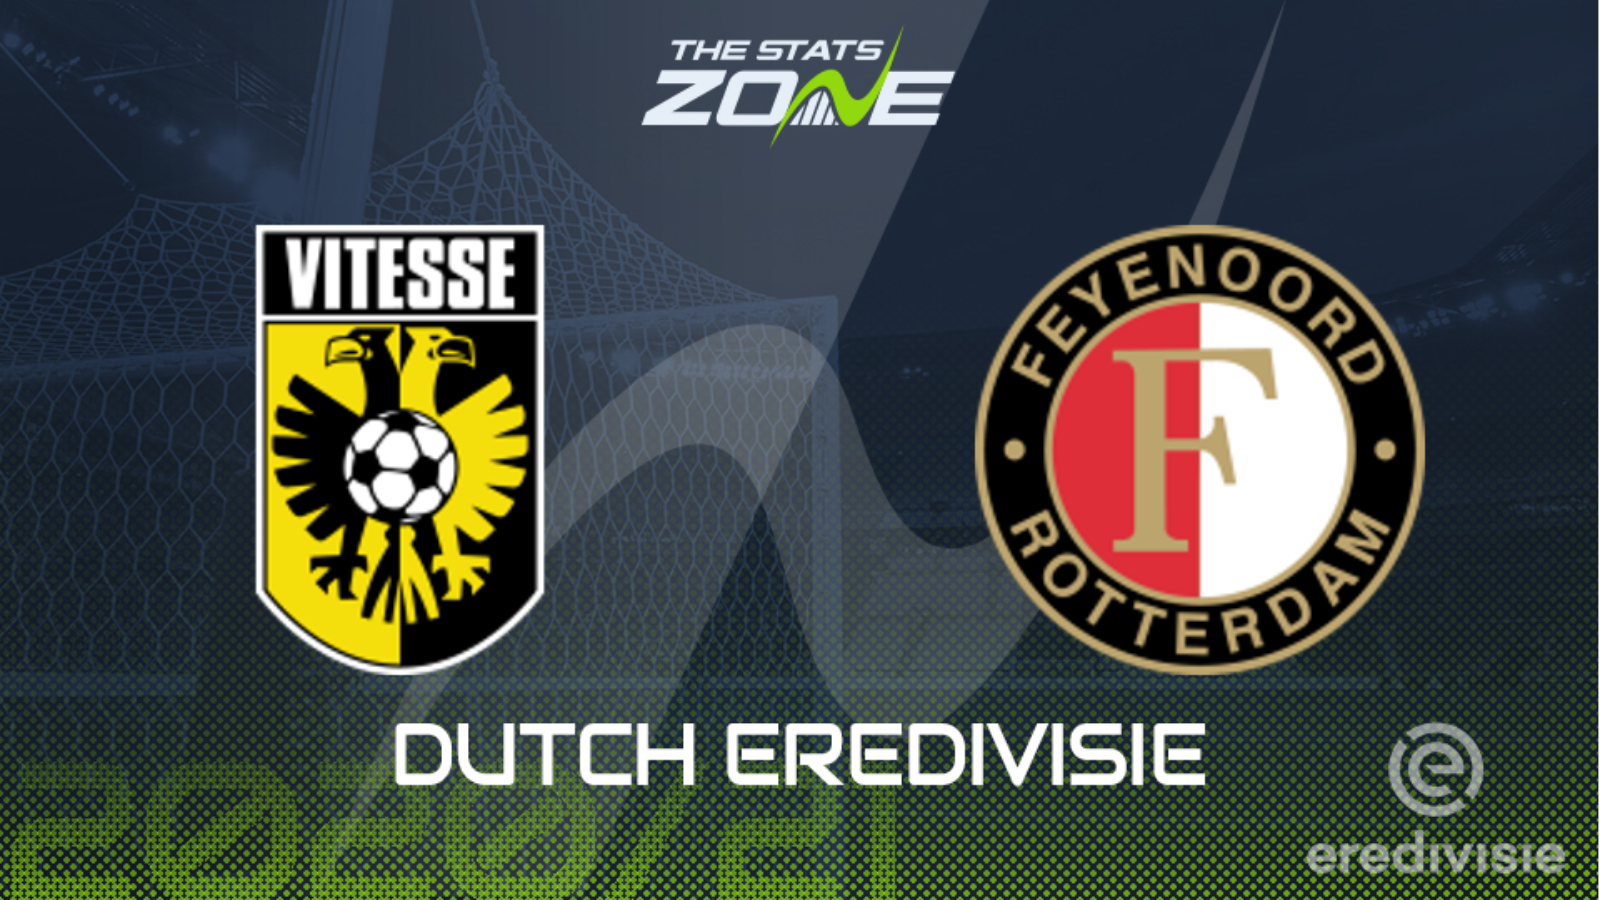 2020 21 Eredivisie Vitesse Vs Feyenoord Preview Prediction The Stats Zone